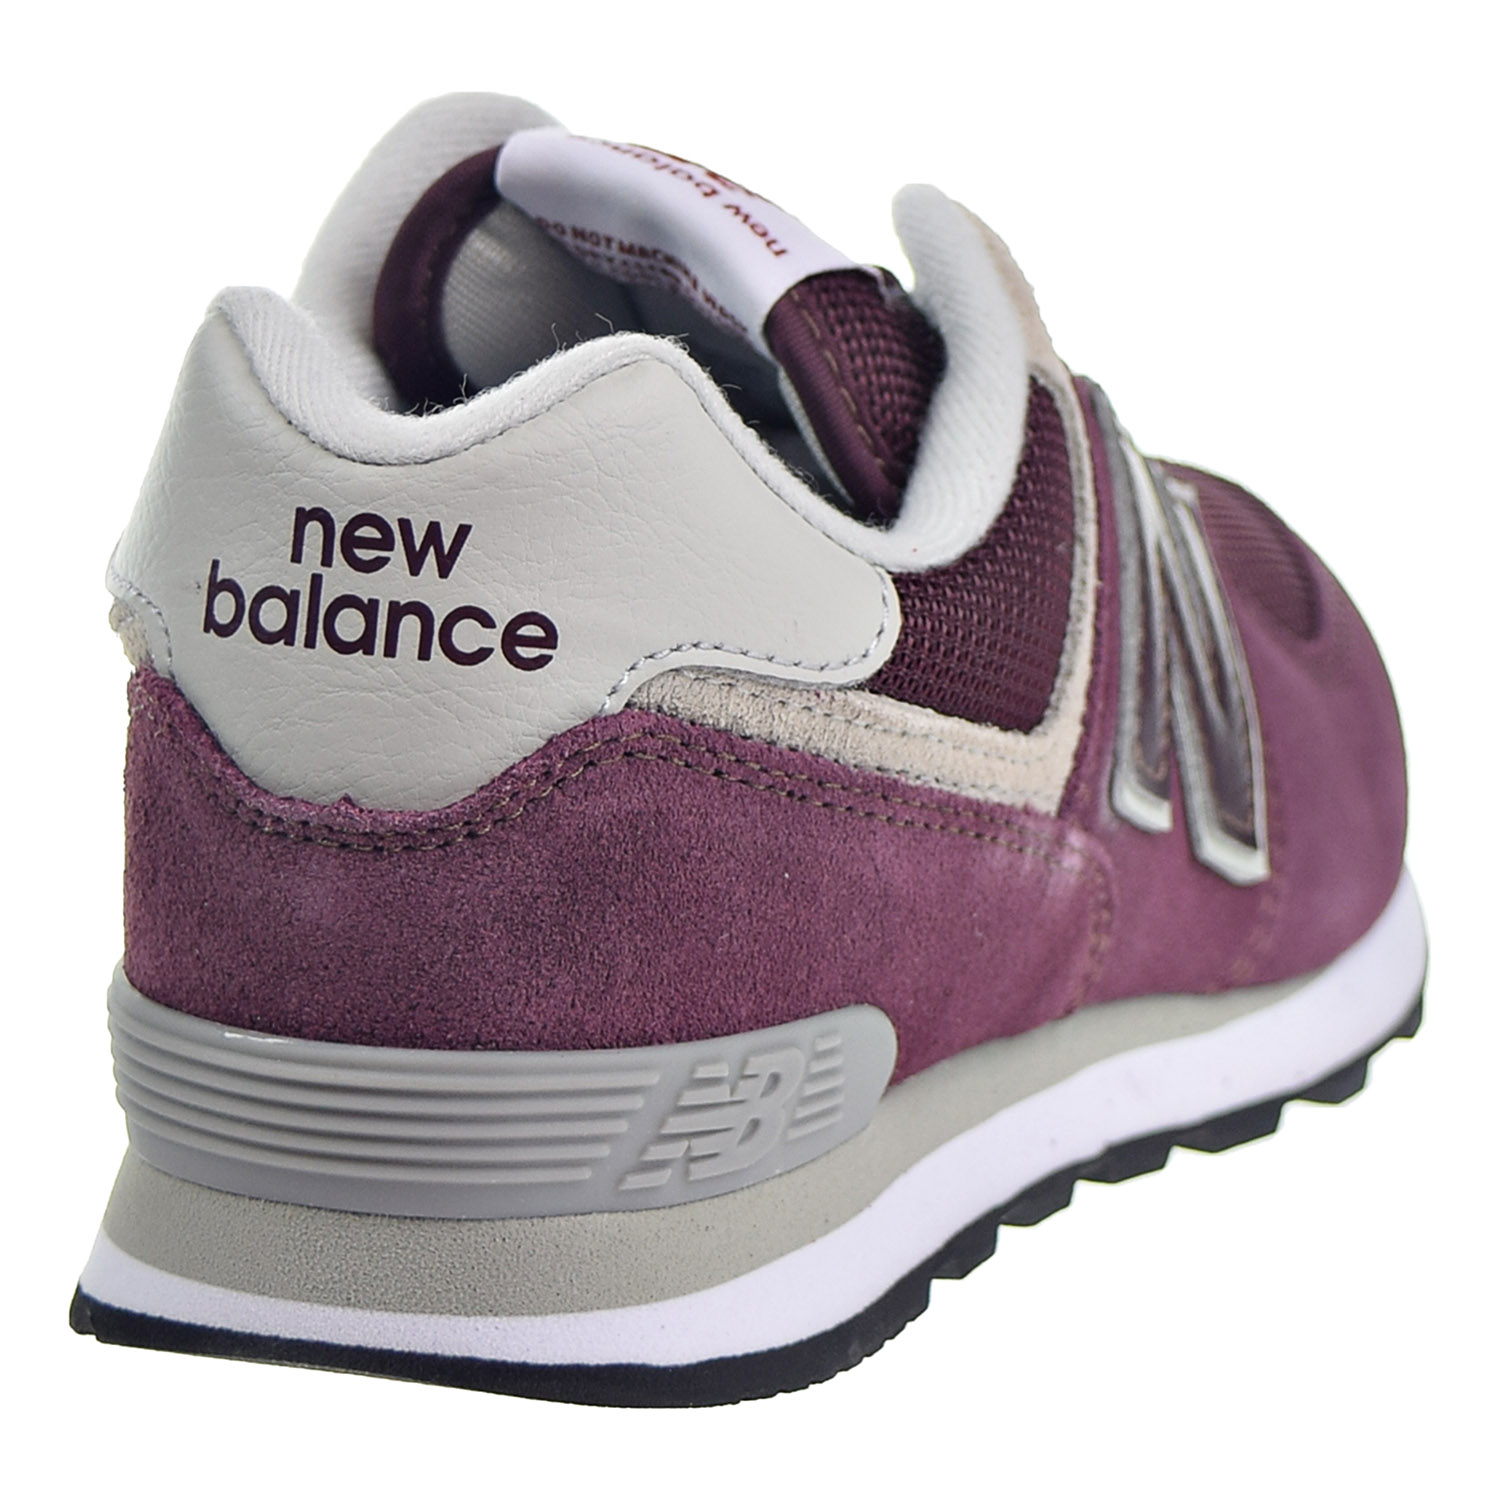 17ad2f7cb03 New Balance 574 Core Big Kid s Shoes Burgundy Grey GC574-GB